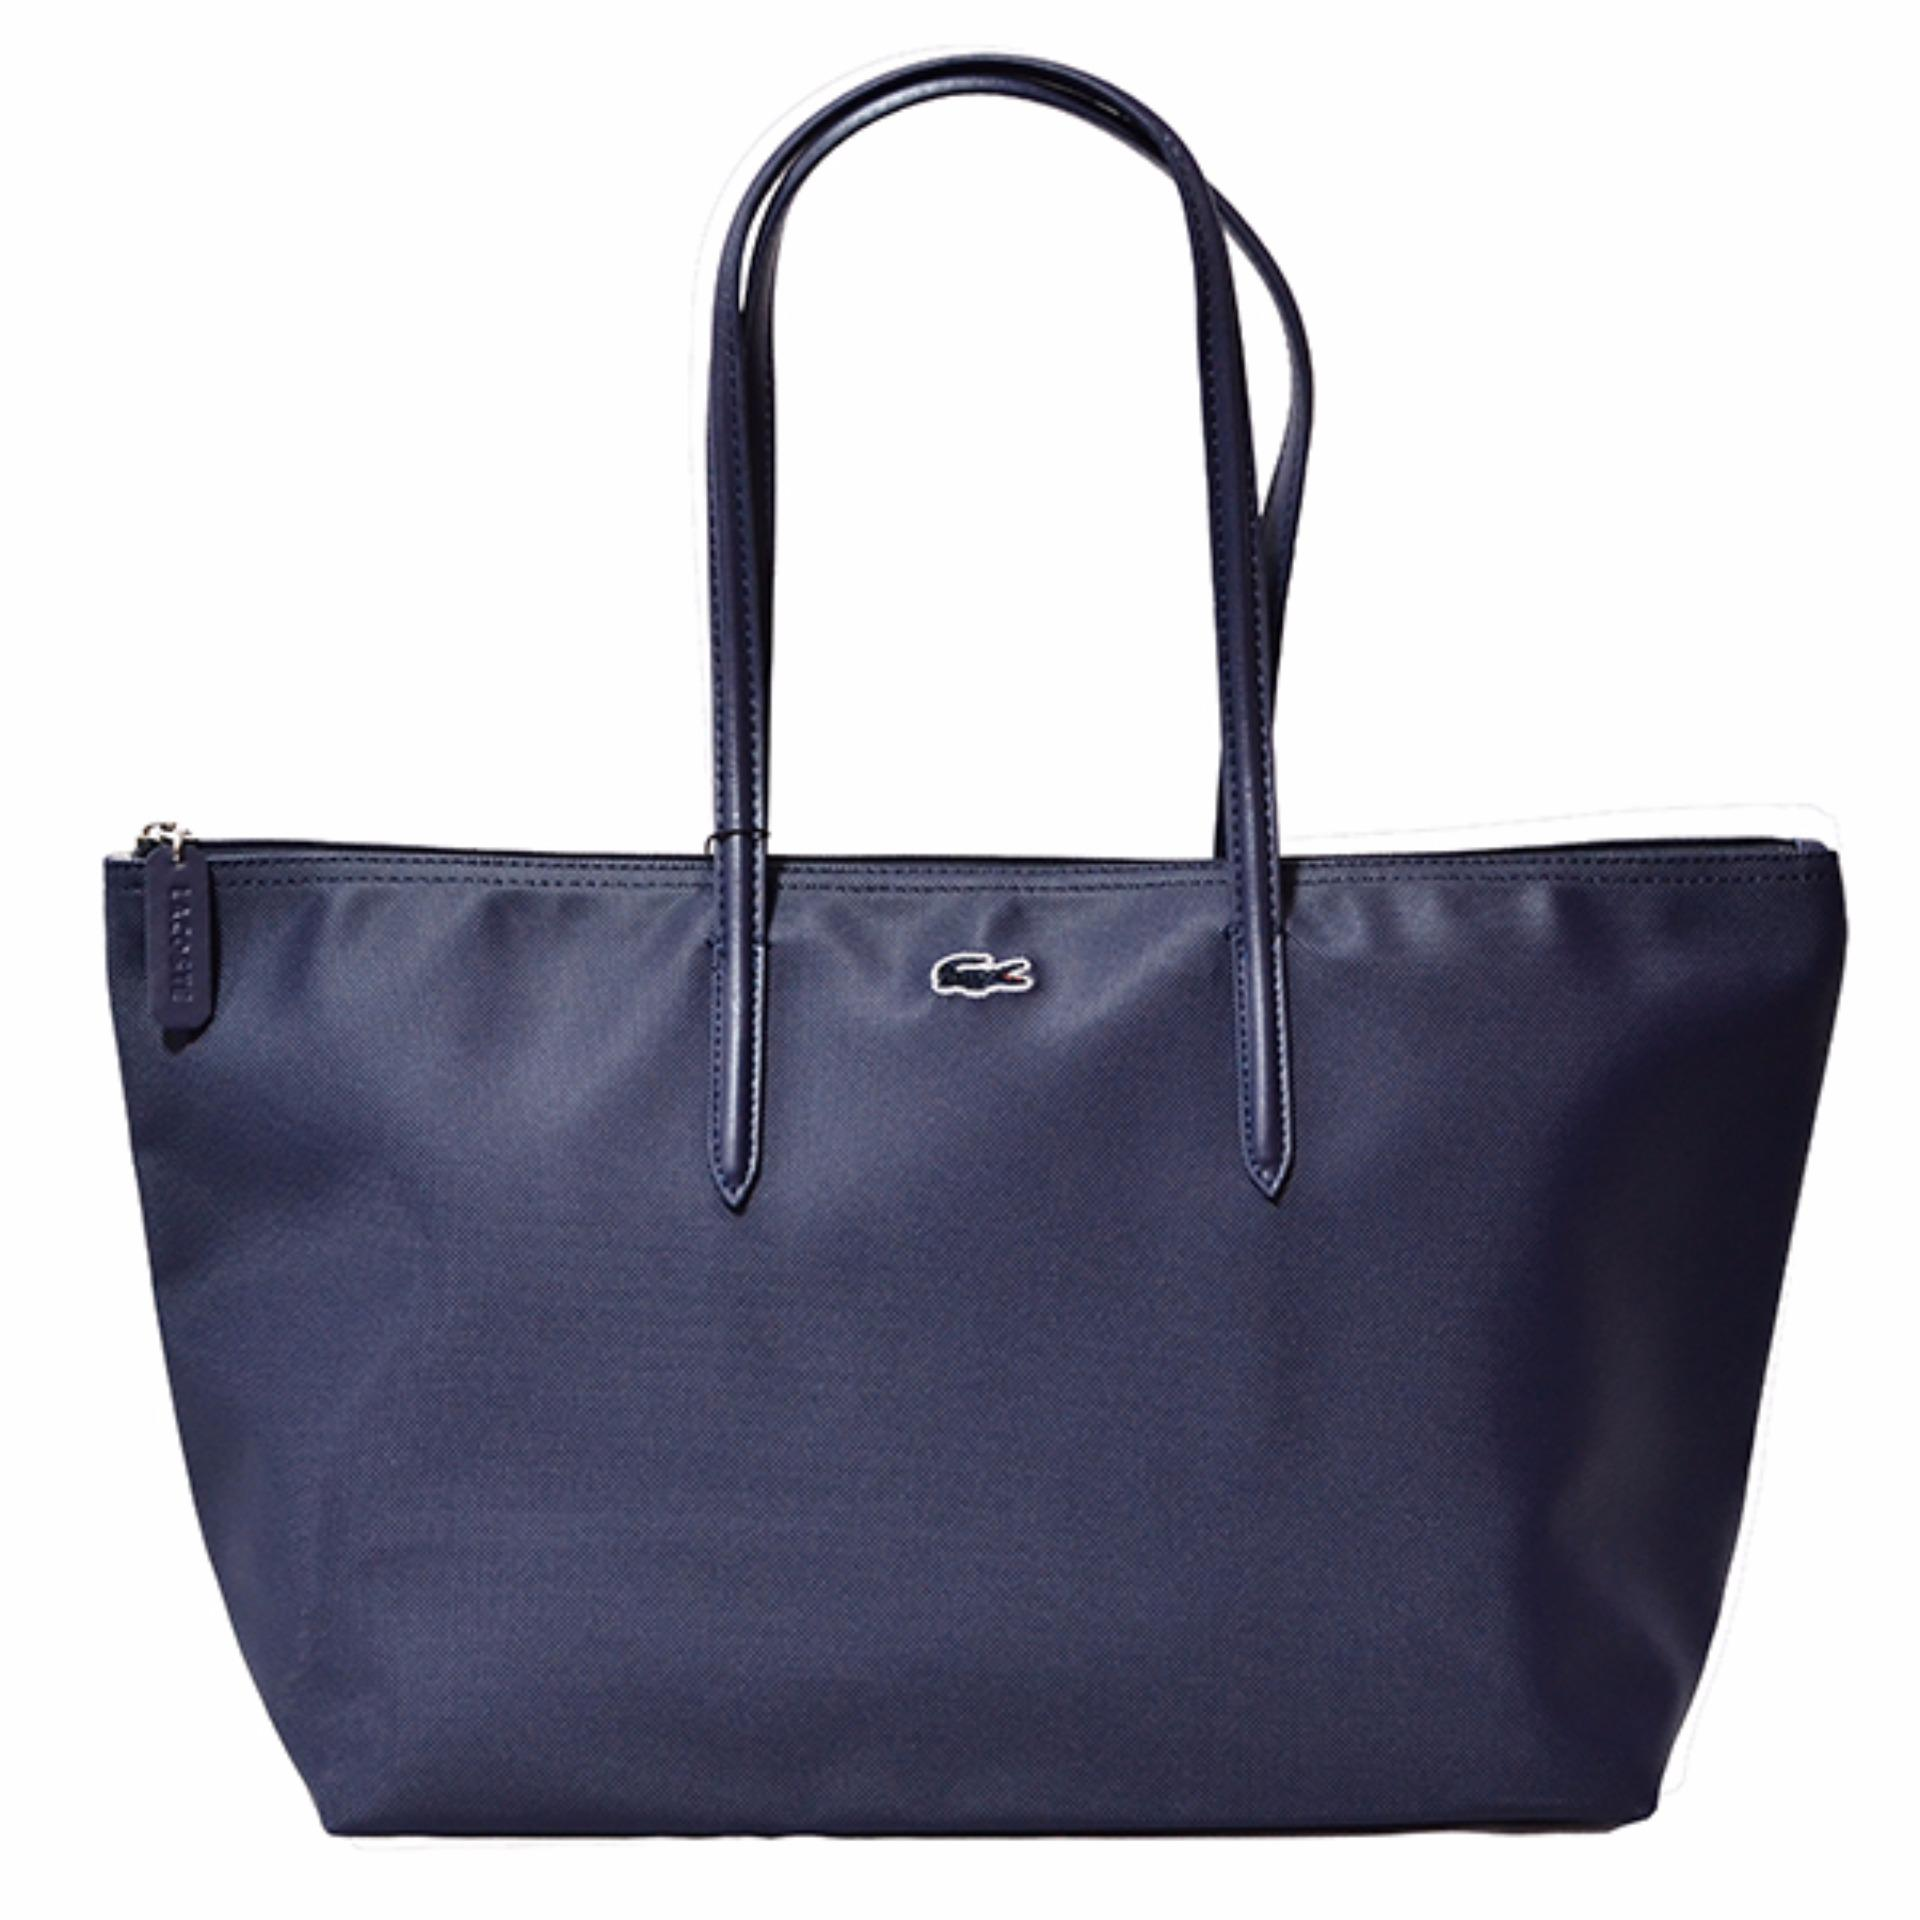 Lacoste Horizontal 2016 Edition Tote Bag (Navy Blue) | Lazada PH